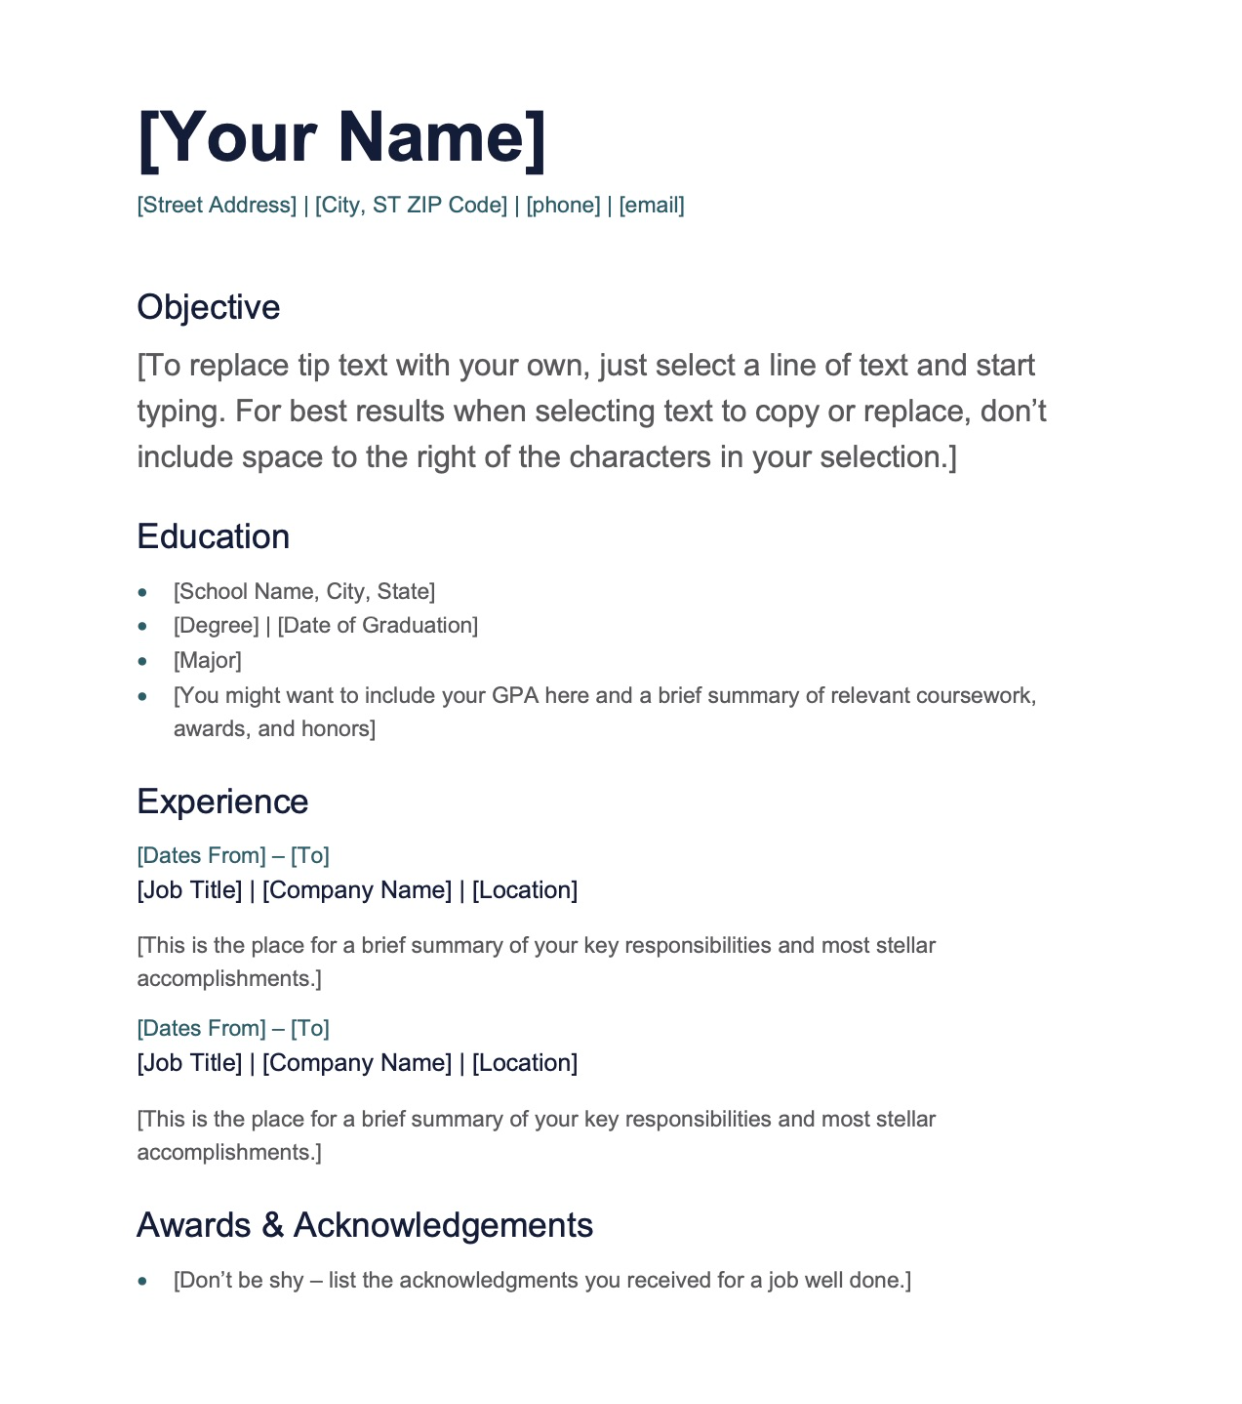 CV Template Option 2